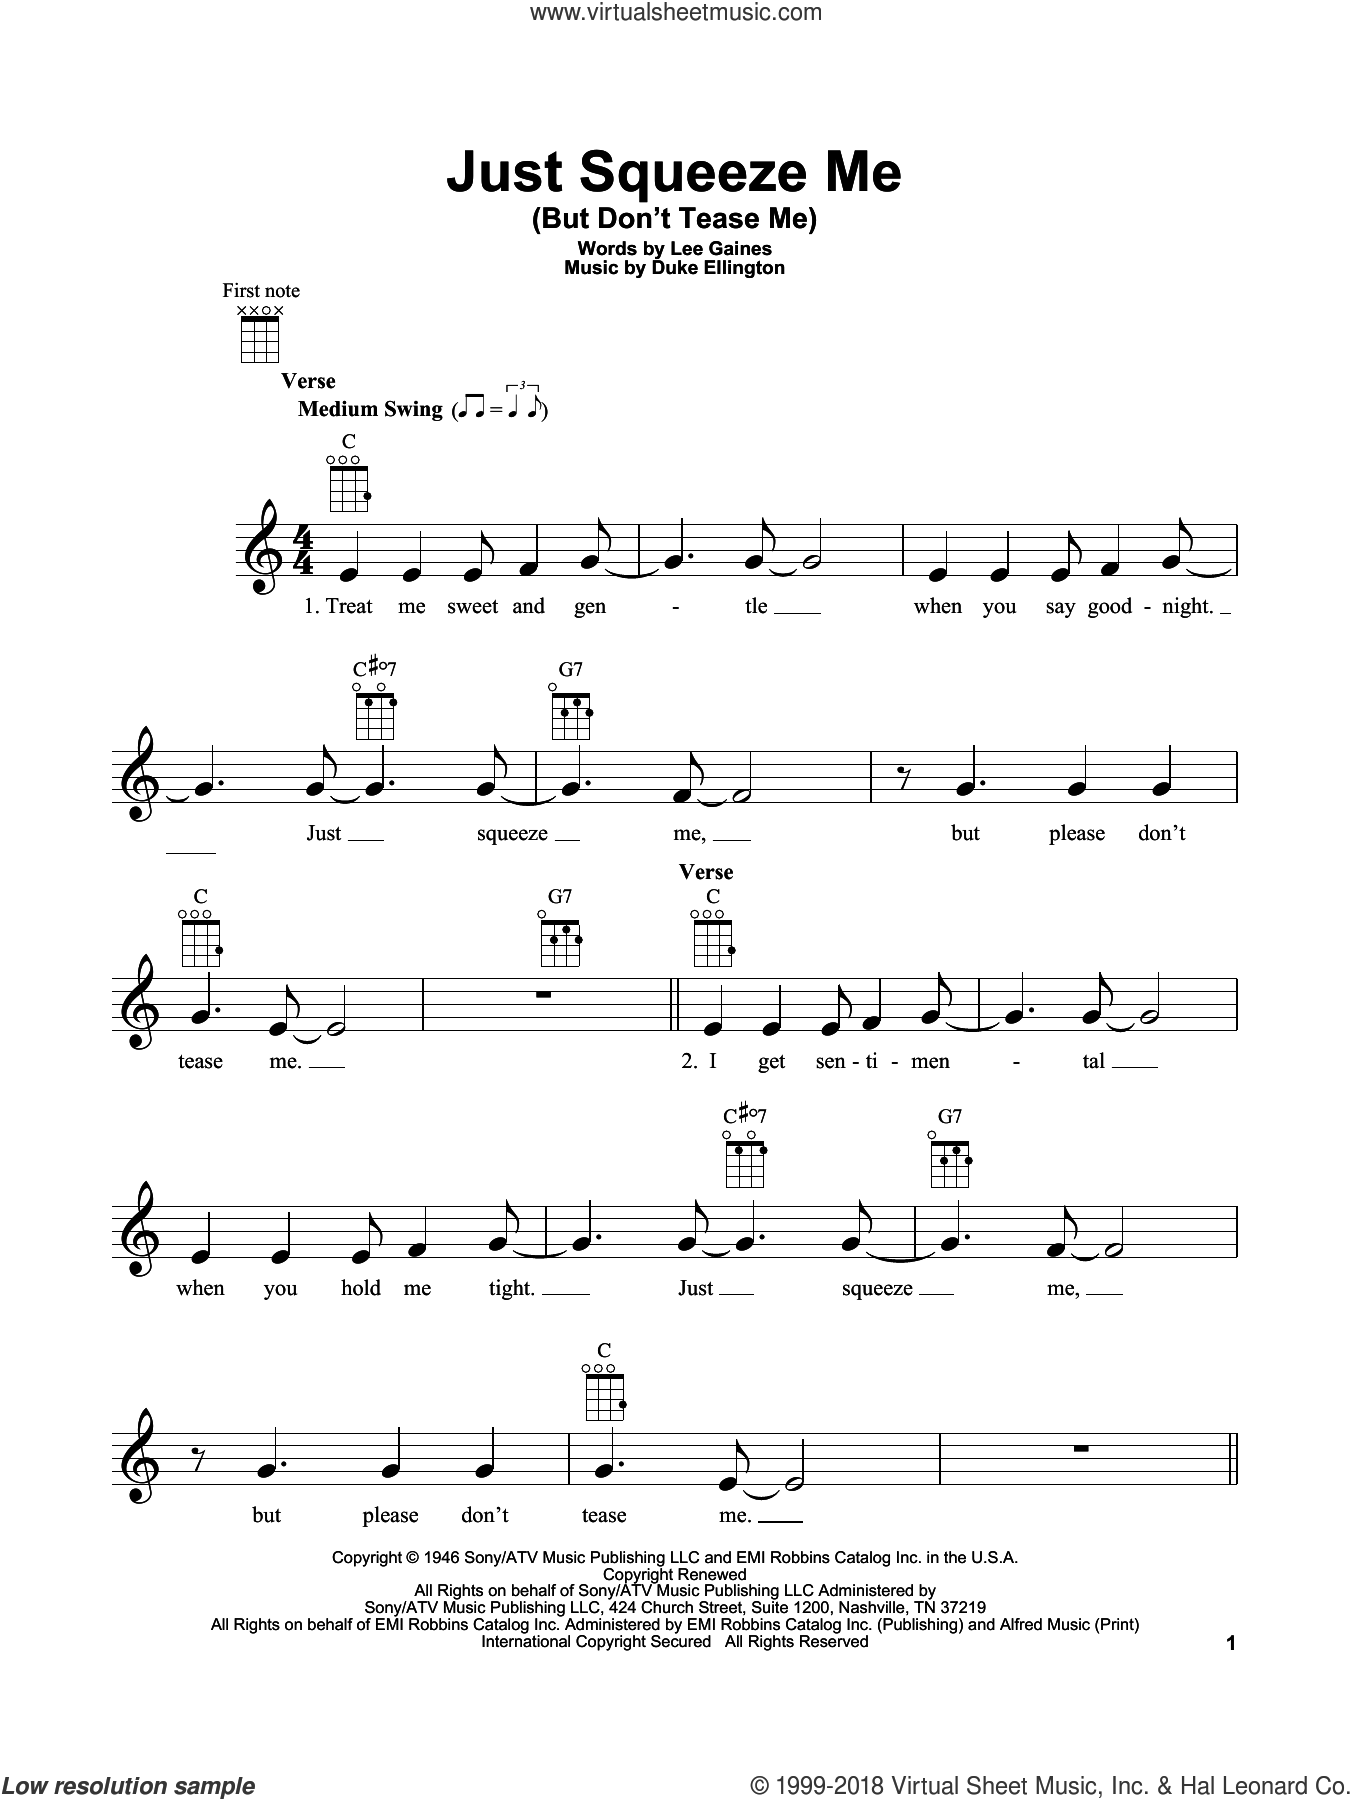 Just Squeeze Me (But Don't Tease Me) sheet music for ukulele by Duke Ellington and Lee Gaines, intermediate skill level